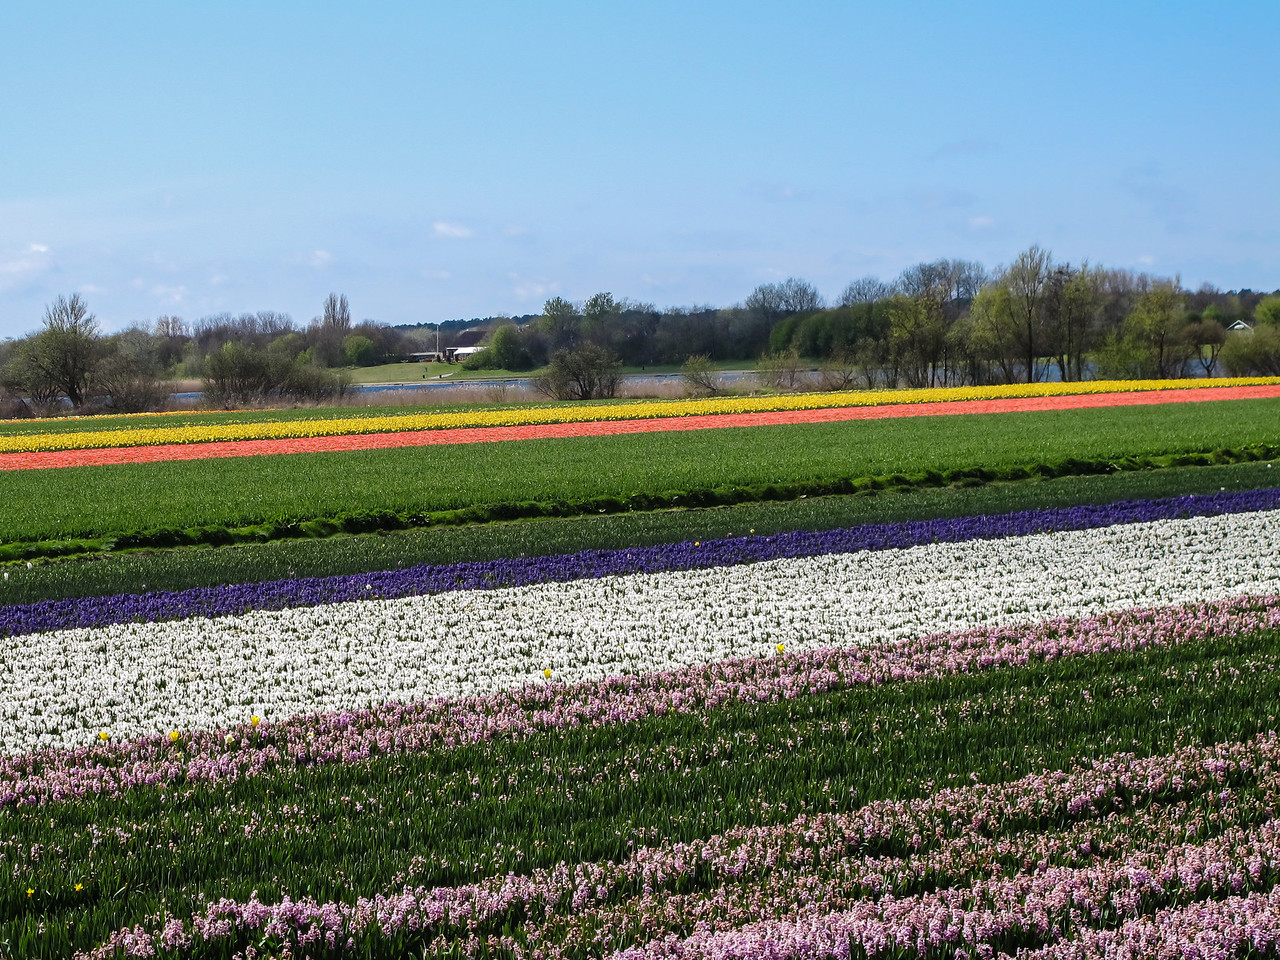 And more tulips....but this time viewed from our bikes as we began our 6-day trip through the countryside.